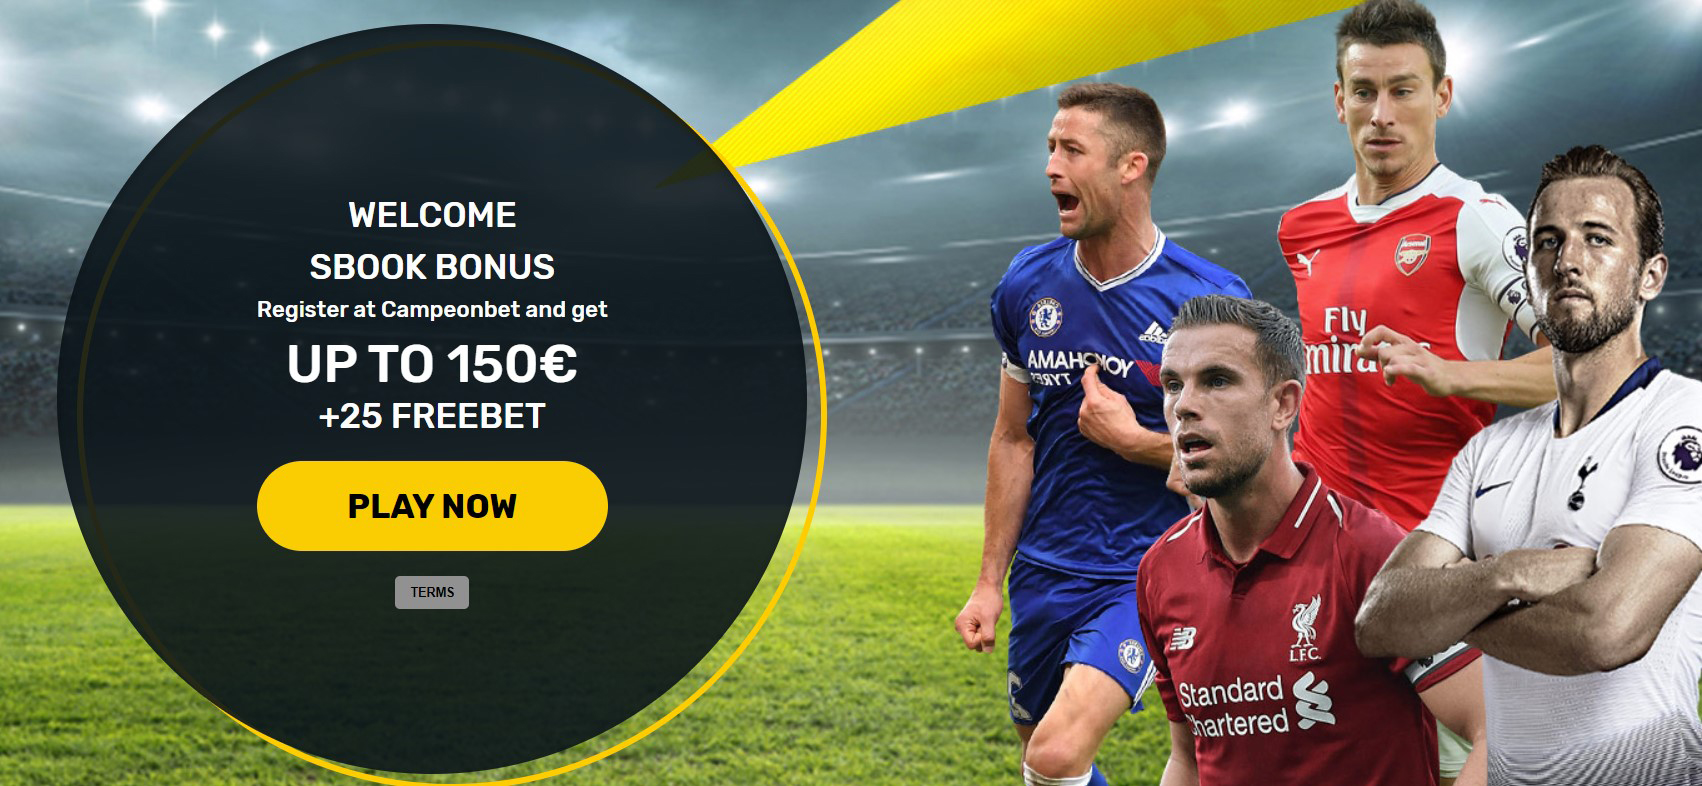 Campeonbet welcomes new customers with a generous offer!